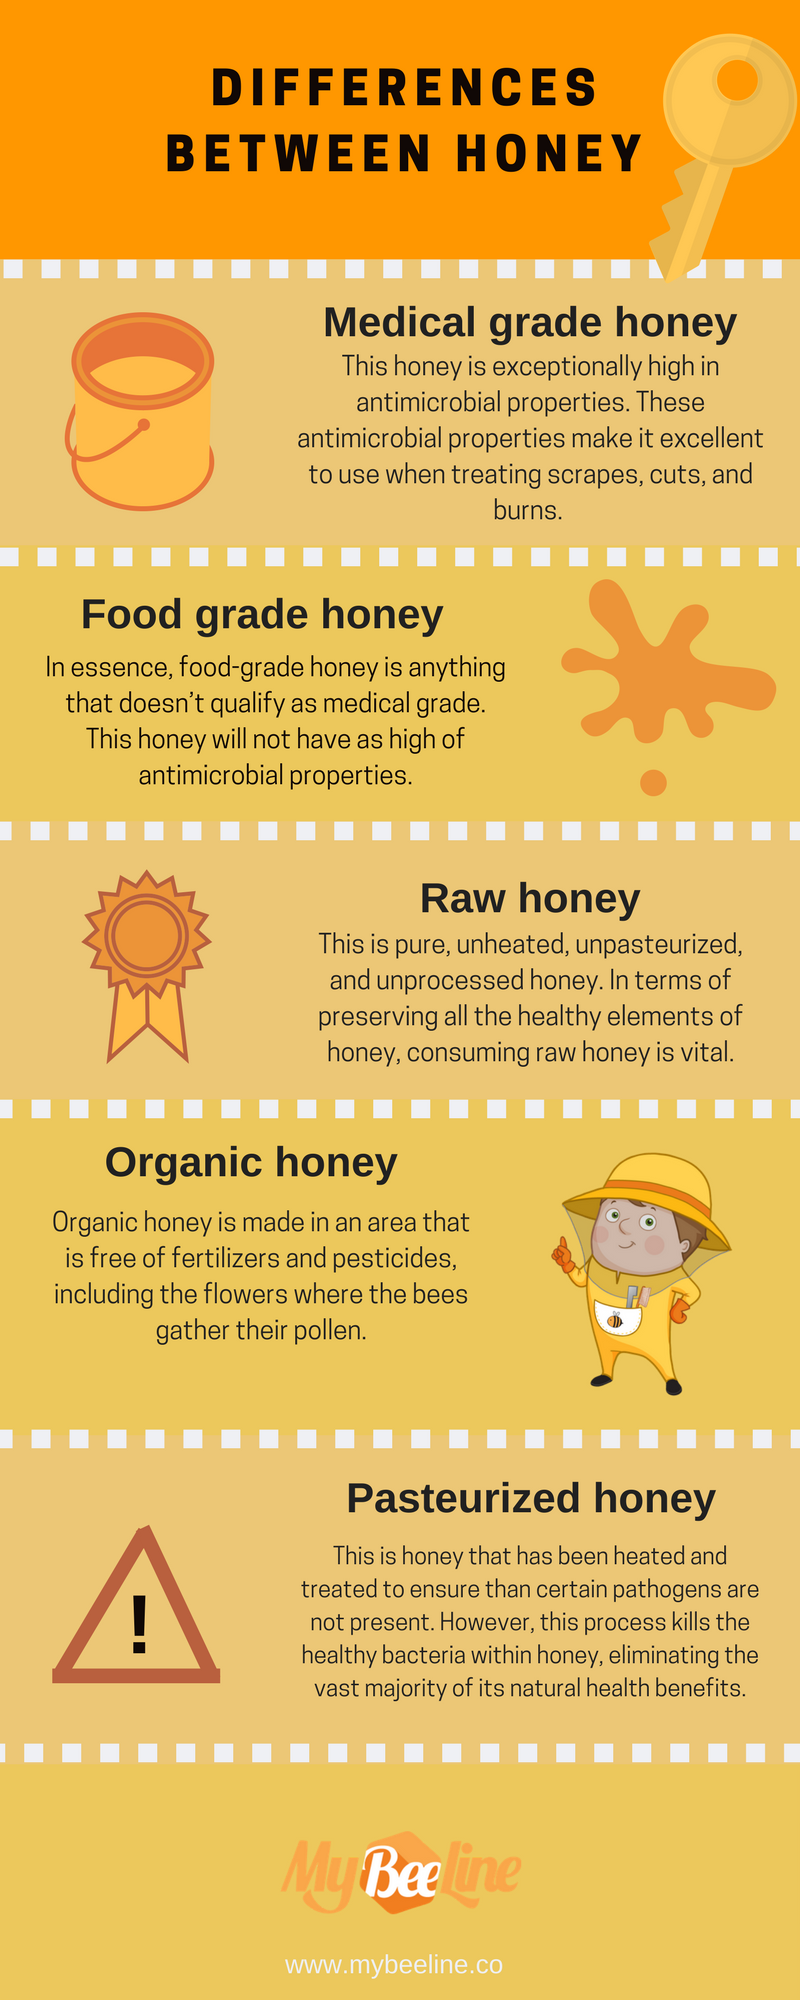 differences between honey